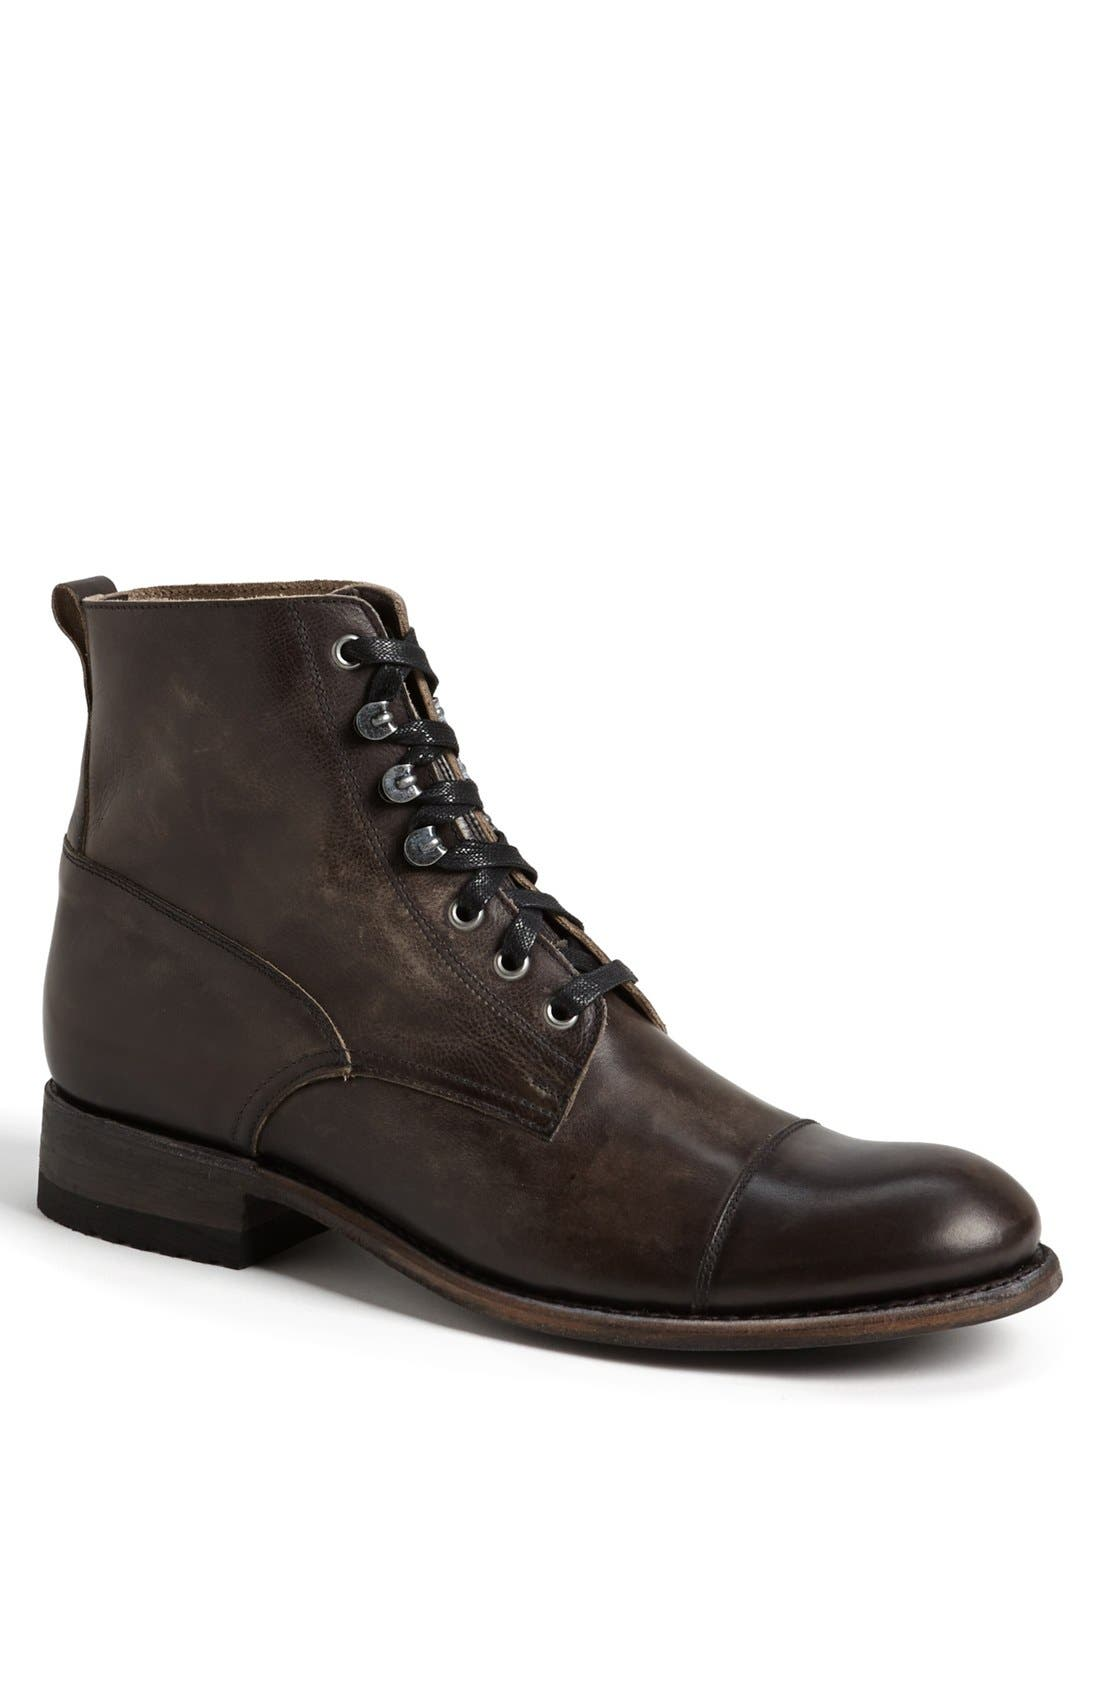 'Station' Cap Toe Boot,                         Main,                         color, ANTRACITE LEATHER